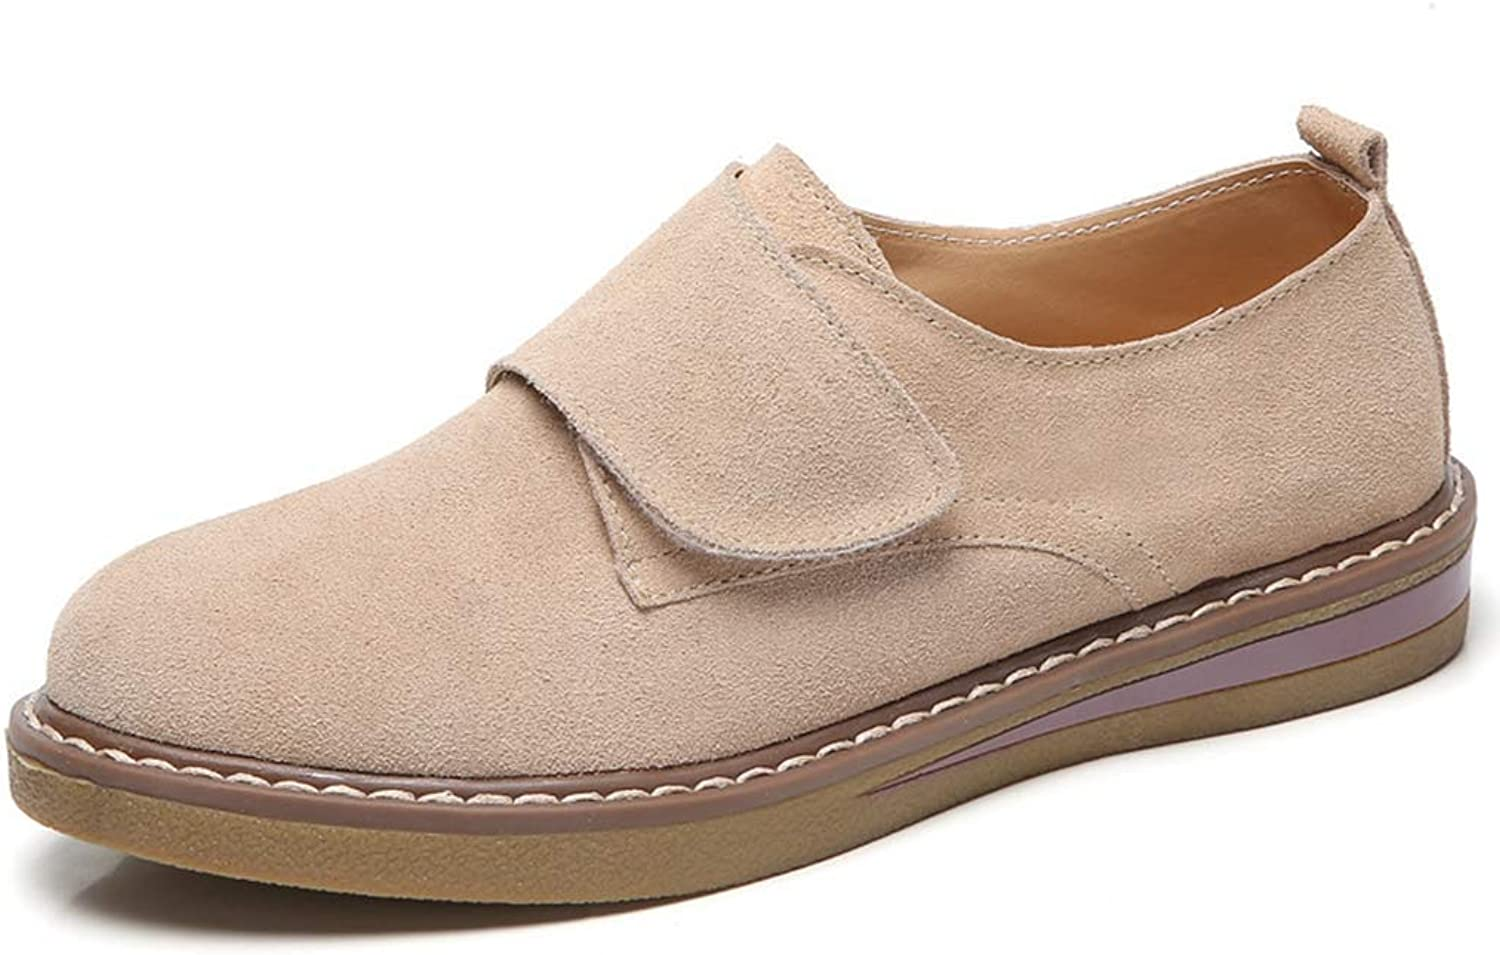 Beautiful - Fashion Women's Flat Heel Loafers Classic Handsewn Suede Leather Driving Moccasins Penny Loafers Casual Slip On Fashion Boat shoes